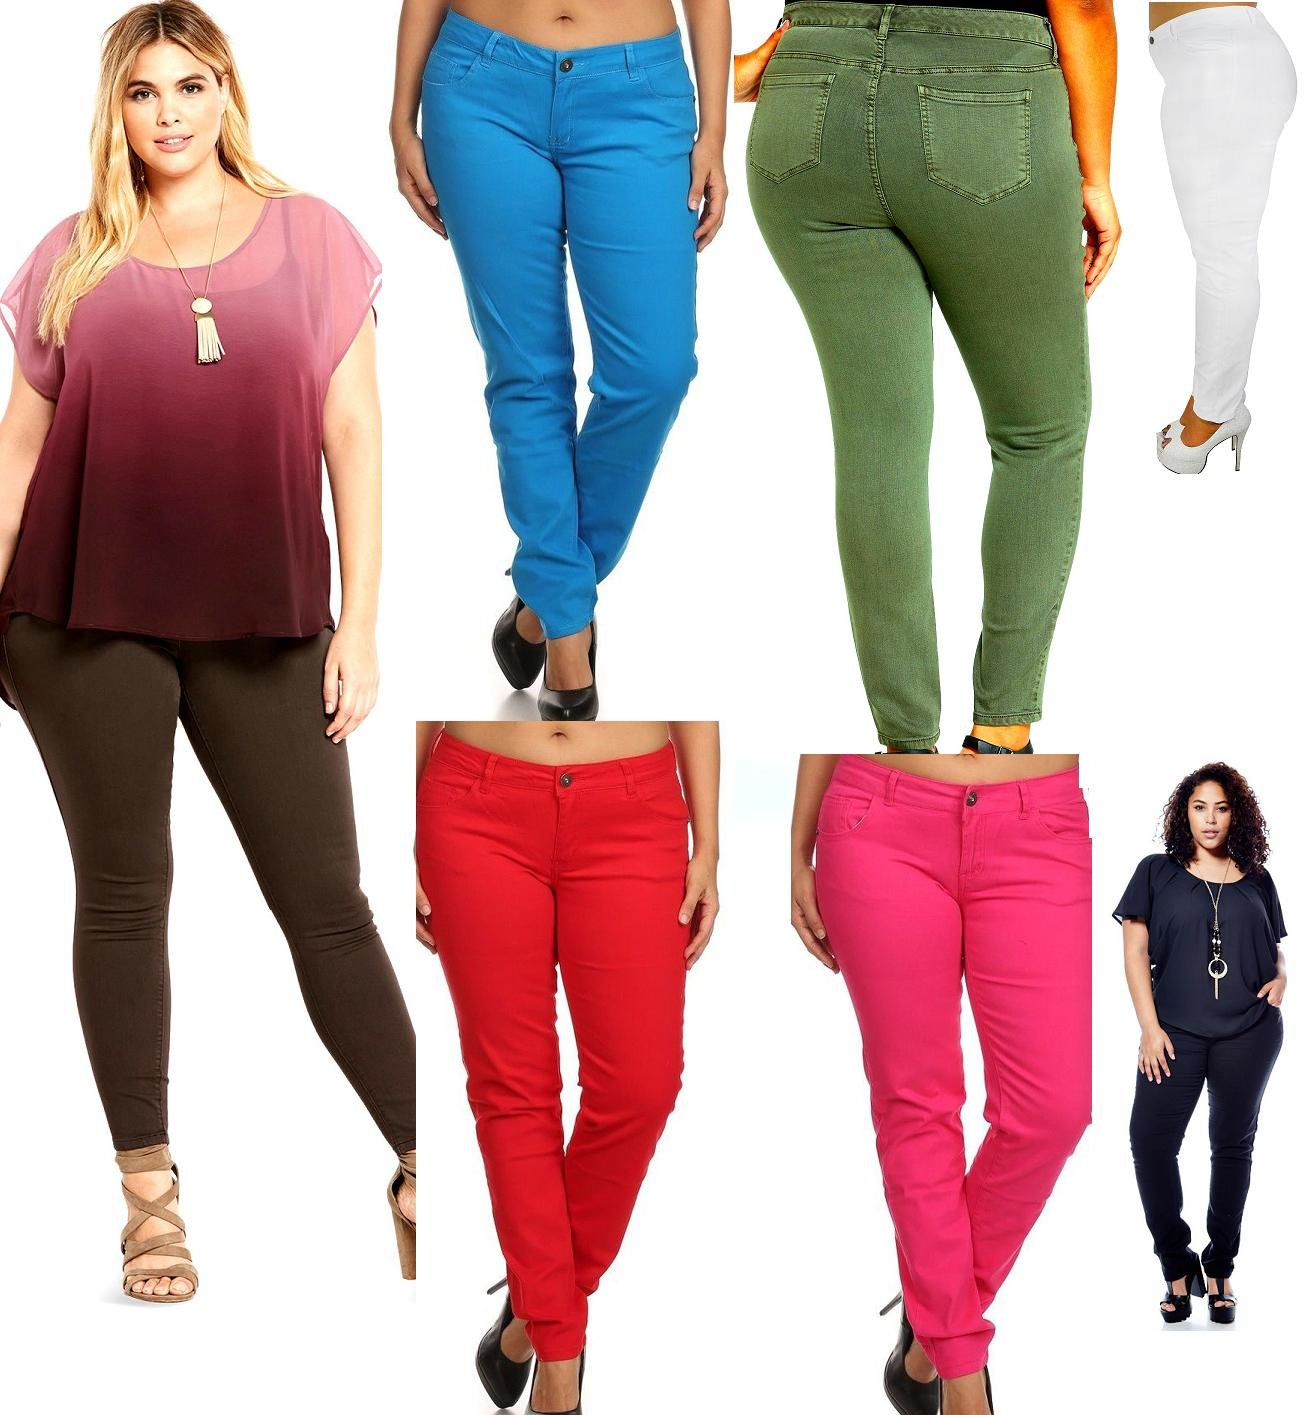 New 1826 Stretch Premium Twill Pants MID-RISD Womens Plus Size Skinny Pants (14 Plus, Red)